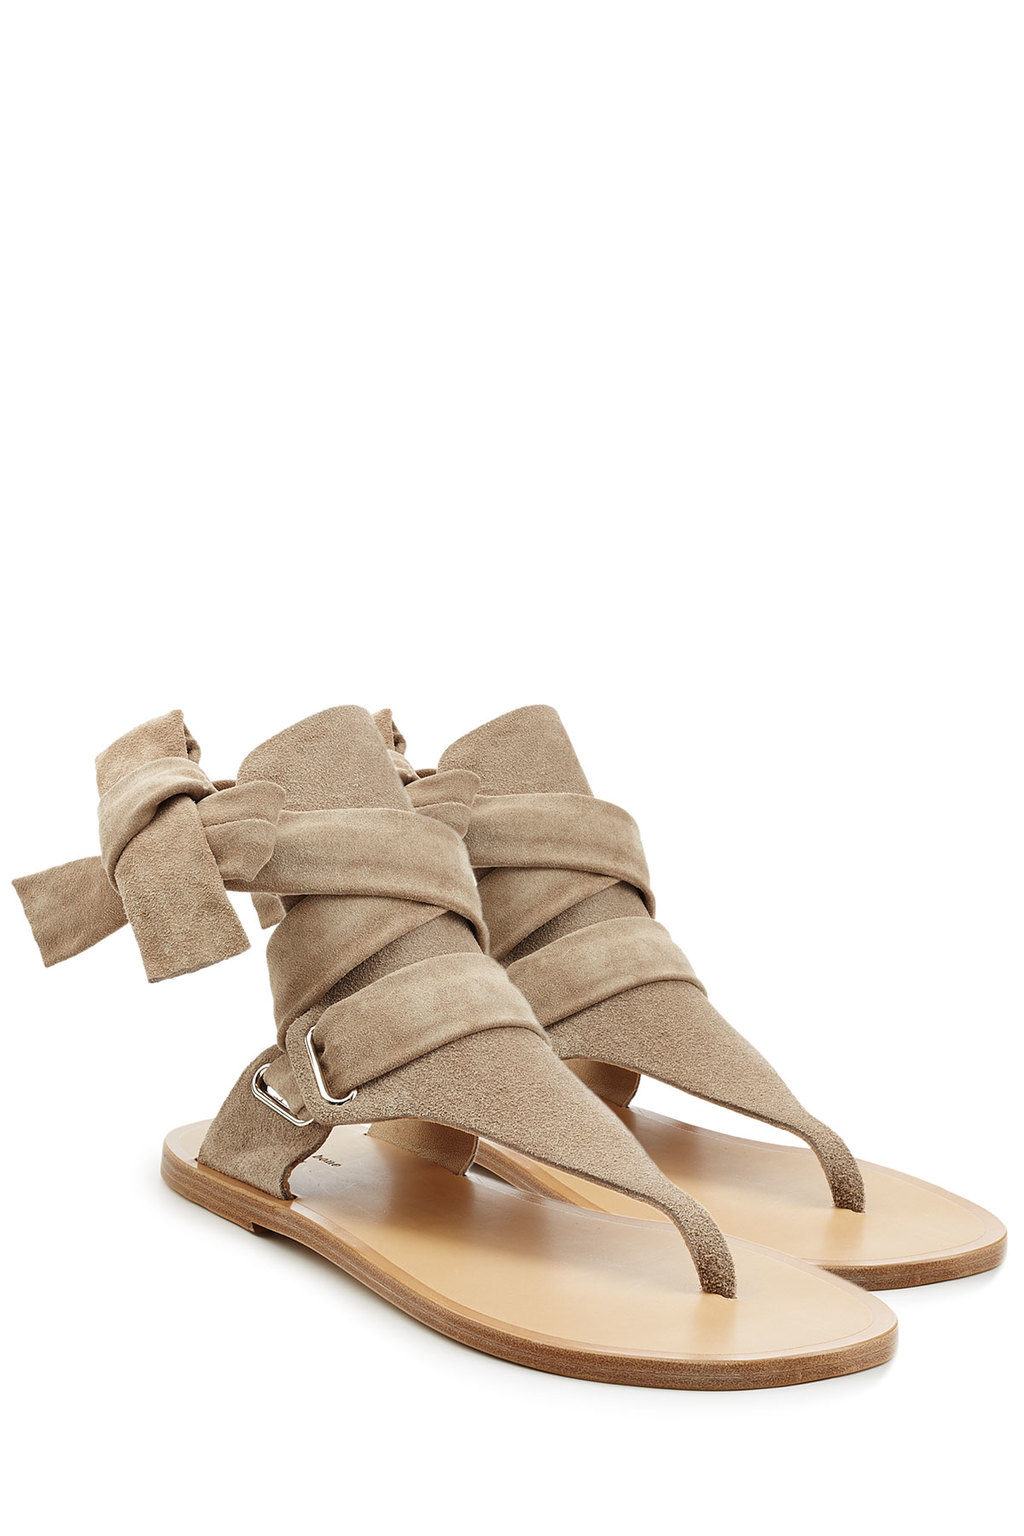 Stretch Suede Wrap Sandals Beige - predominant colour: stone; material: suede; heel height: flat; ankle detail: ankle tie; heel: block; toe: toe thongs; style: flip flops; occasions: holiday; finish: plain; pattern: plain; season: s/s 2016